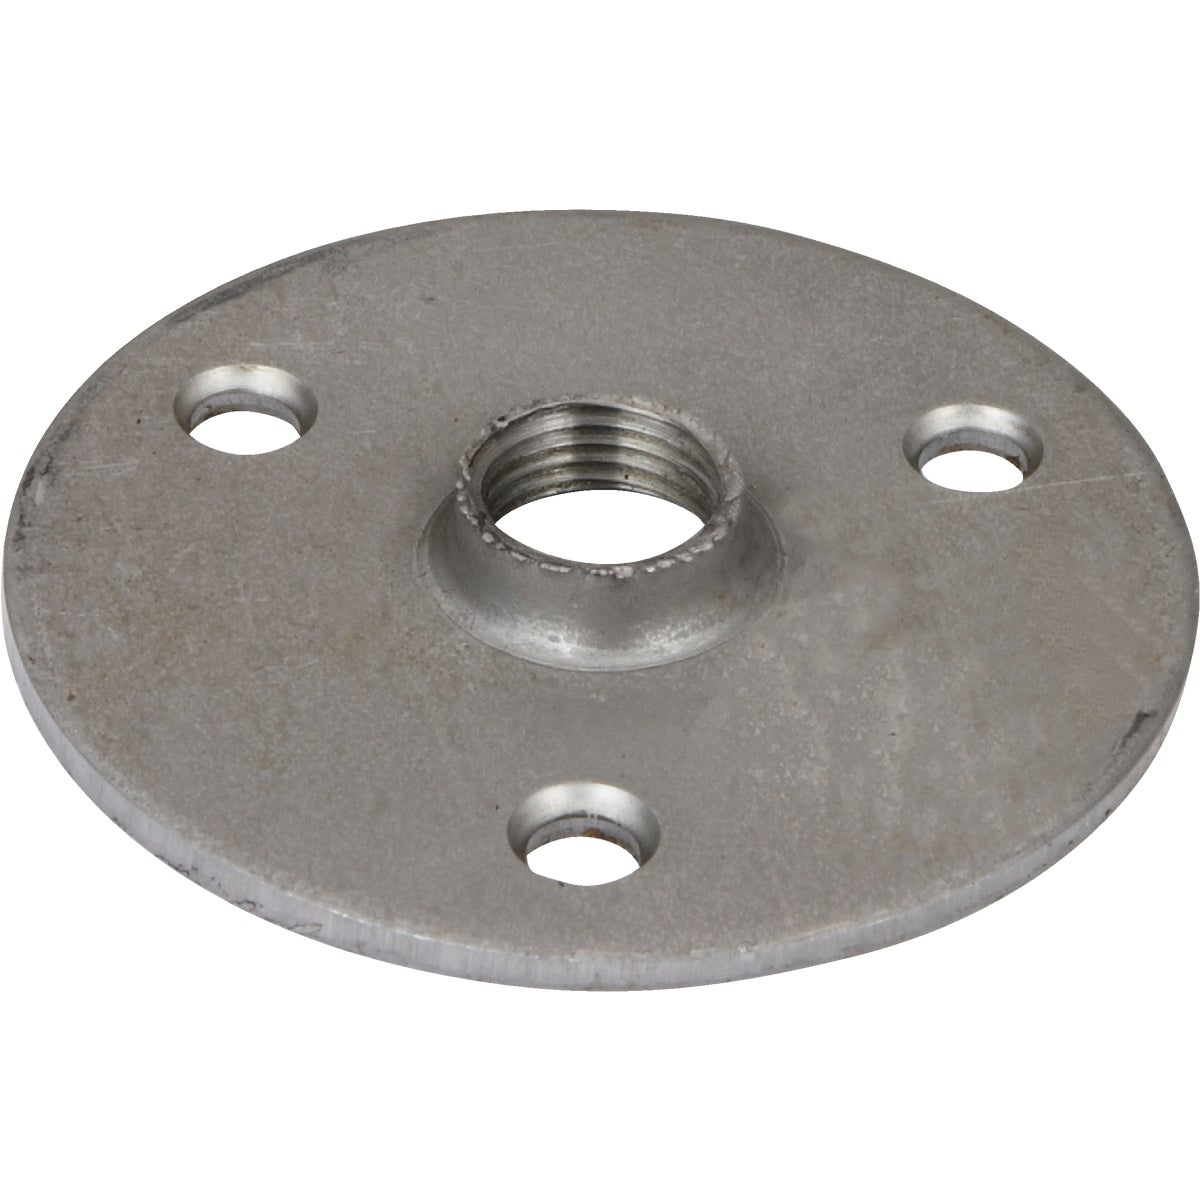 "3/8"" STEEL FLOOR FLANGE -  by Western Reserve Mfg"